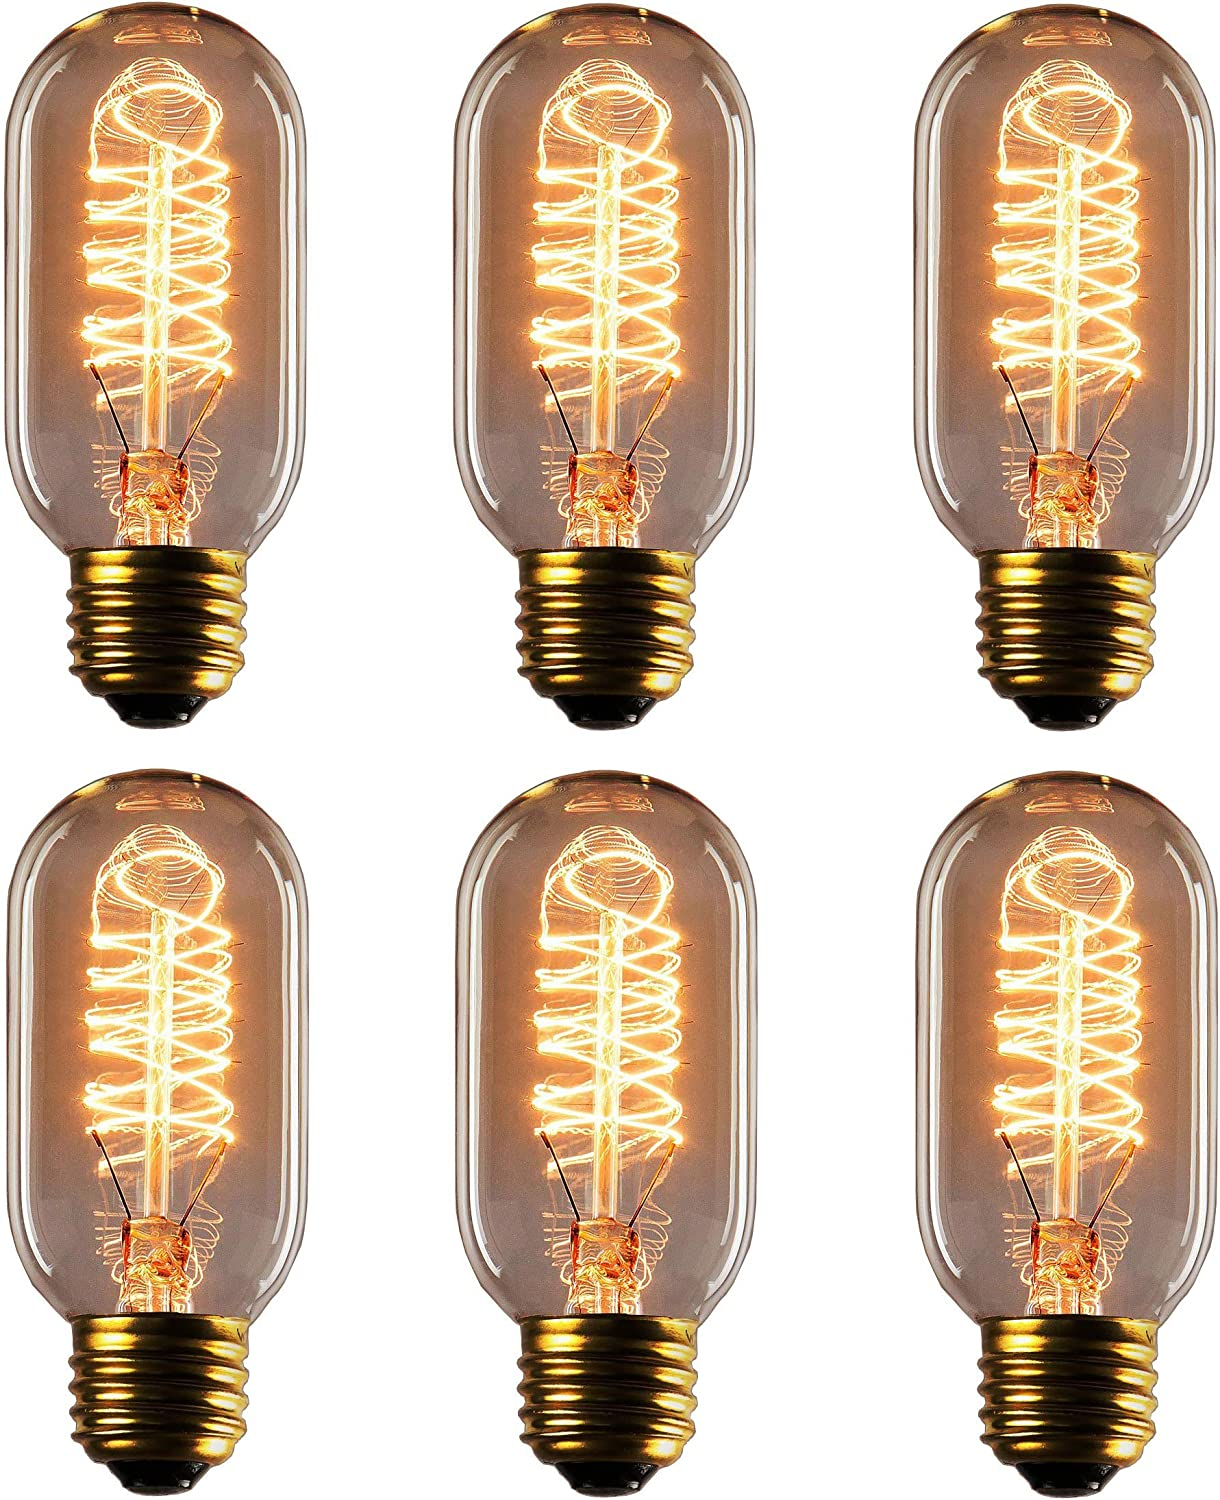 Rolay T45 Edison Style Square Spiral Filament Incandescent Light Bulb 6 Pack Vintage Edison Bulbs 25 Watts, 6 Pack